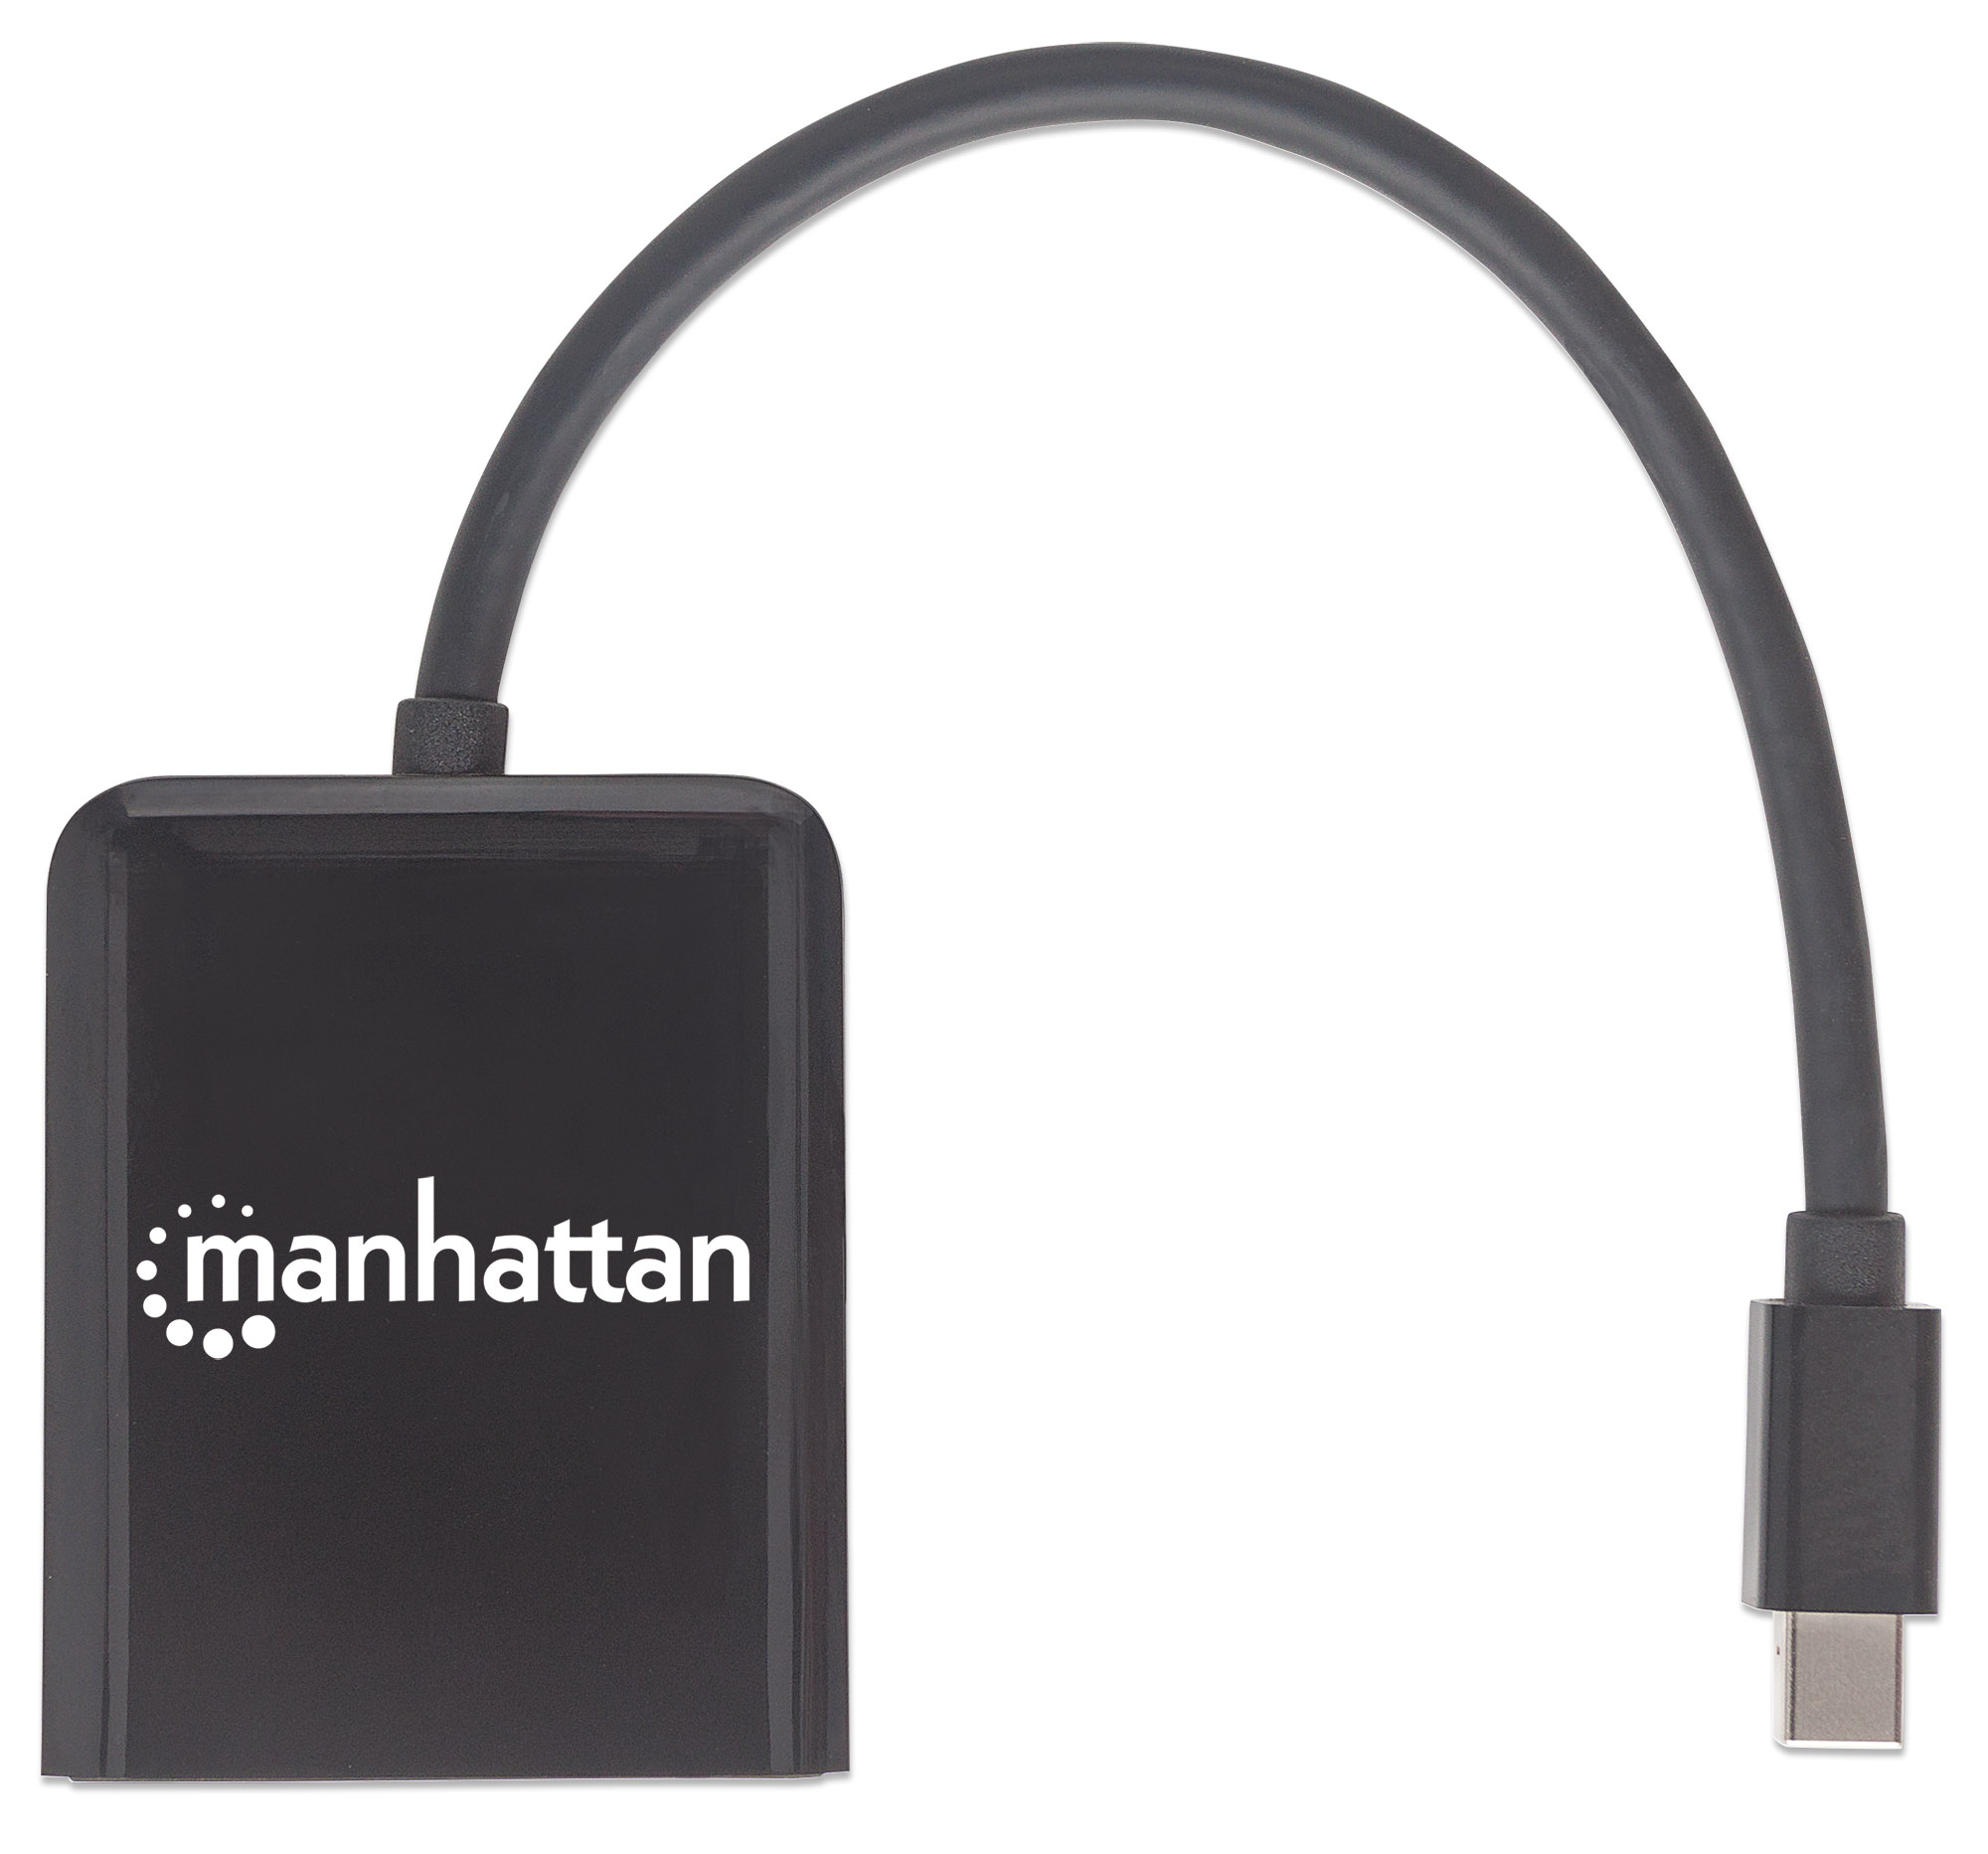 Mini DisplayPort to Dual DisplayPort - MST Hub